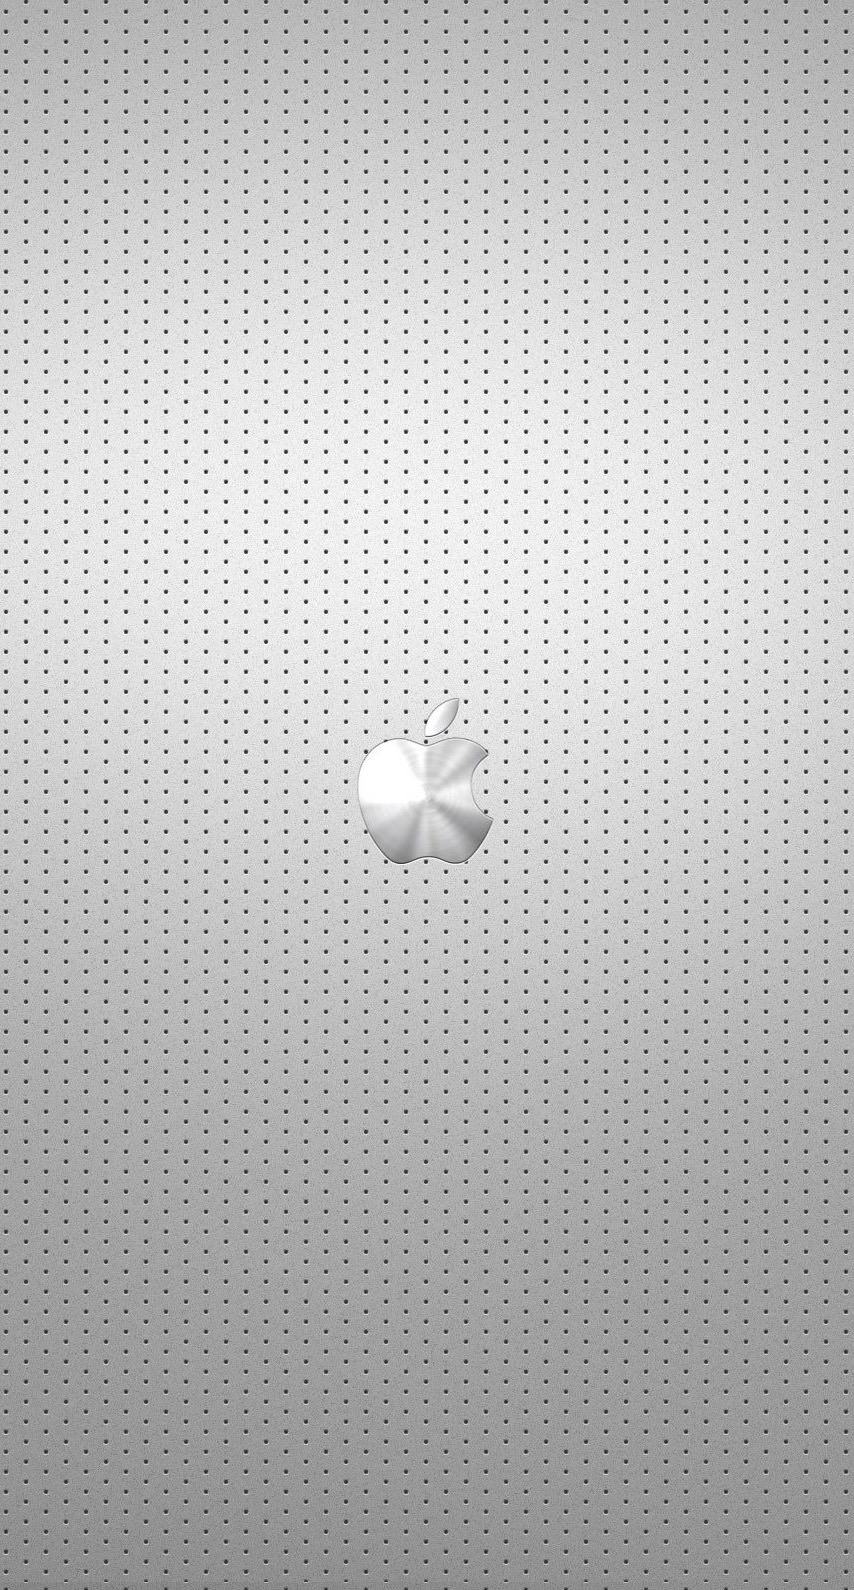 More Live Wallpapers Iphone X Download Silver Iphone Wallpaper Gallery